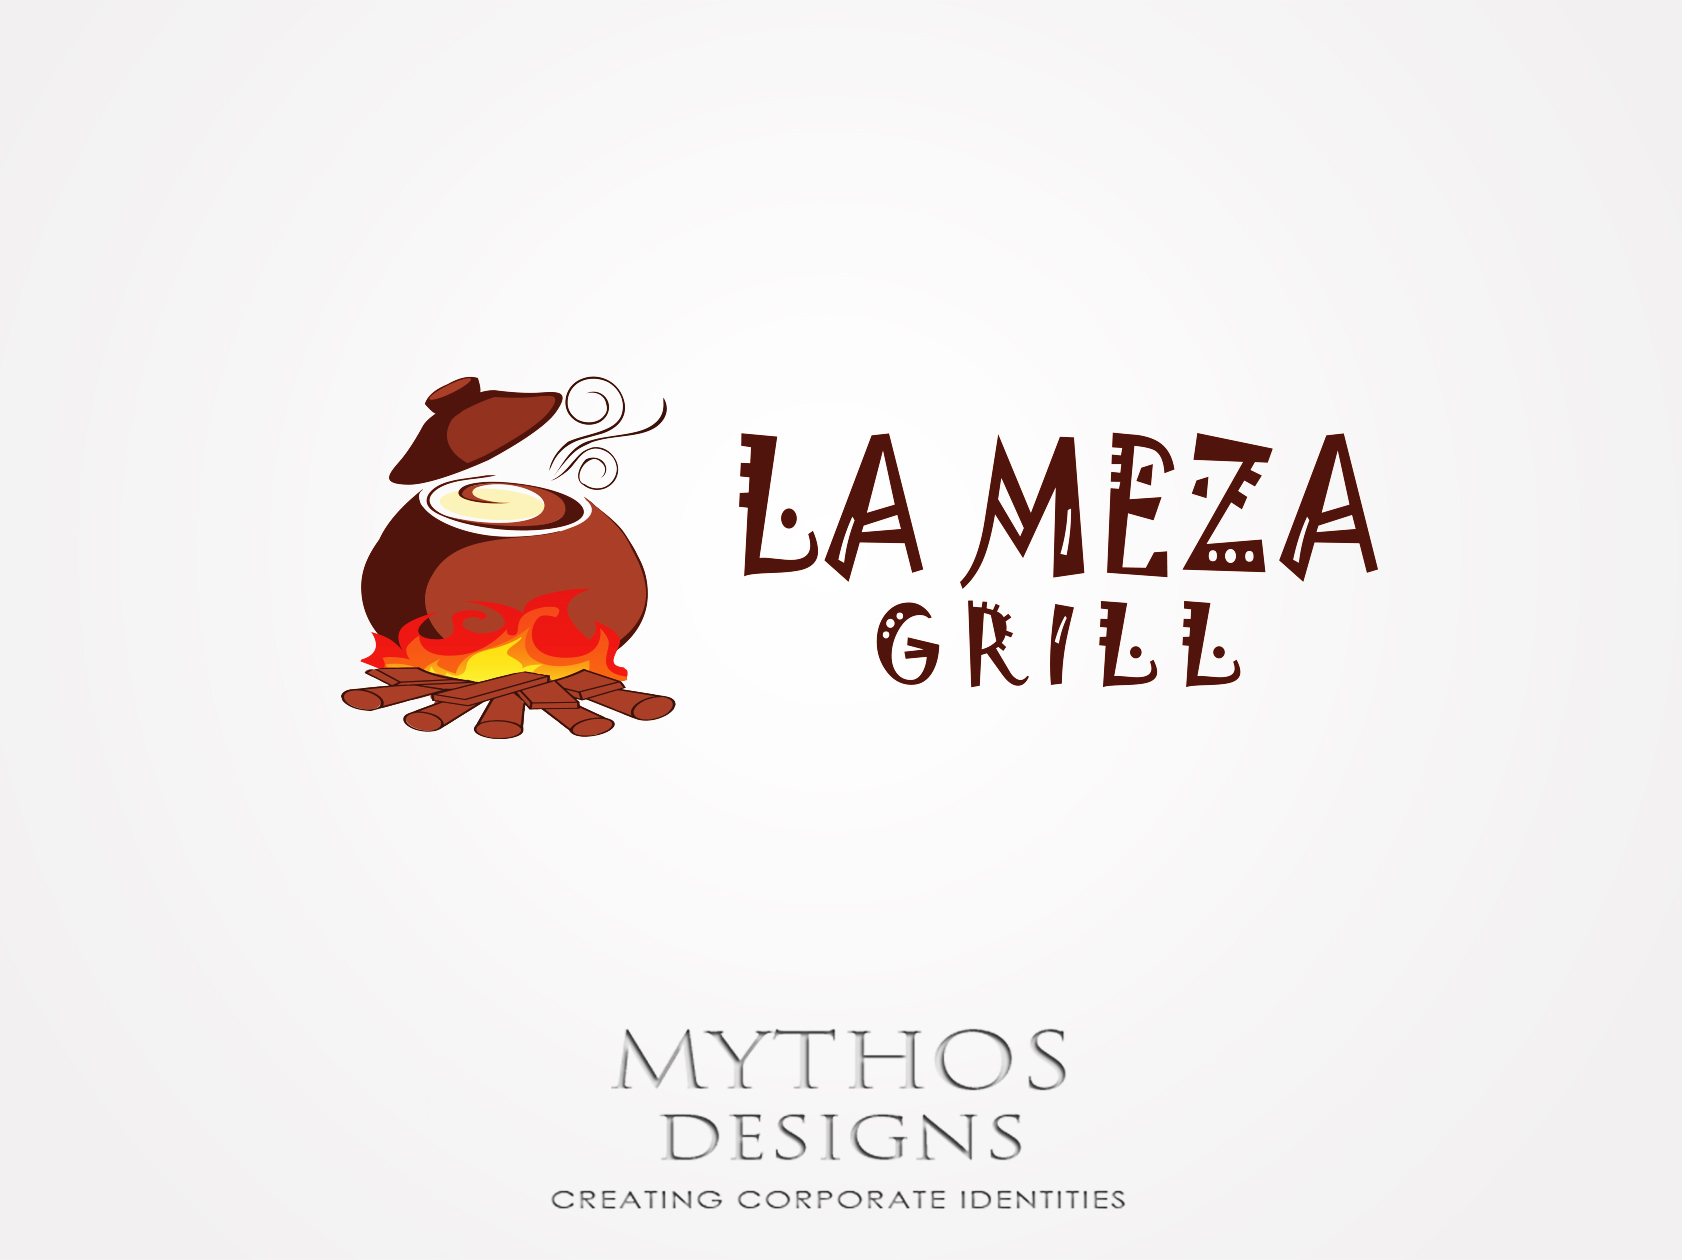 Logo Design by Mythos Designs - Entry No. 26 in the Logo Design Contest Inspiring Logo Design for La Meza Grill Ltd..